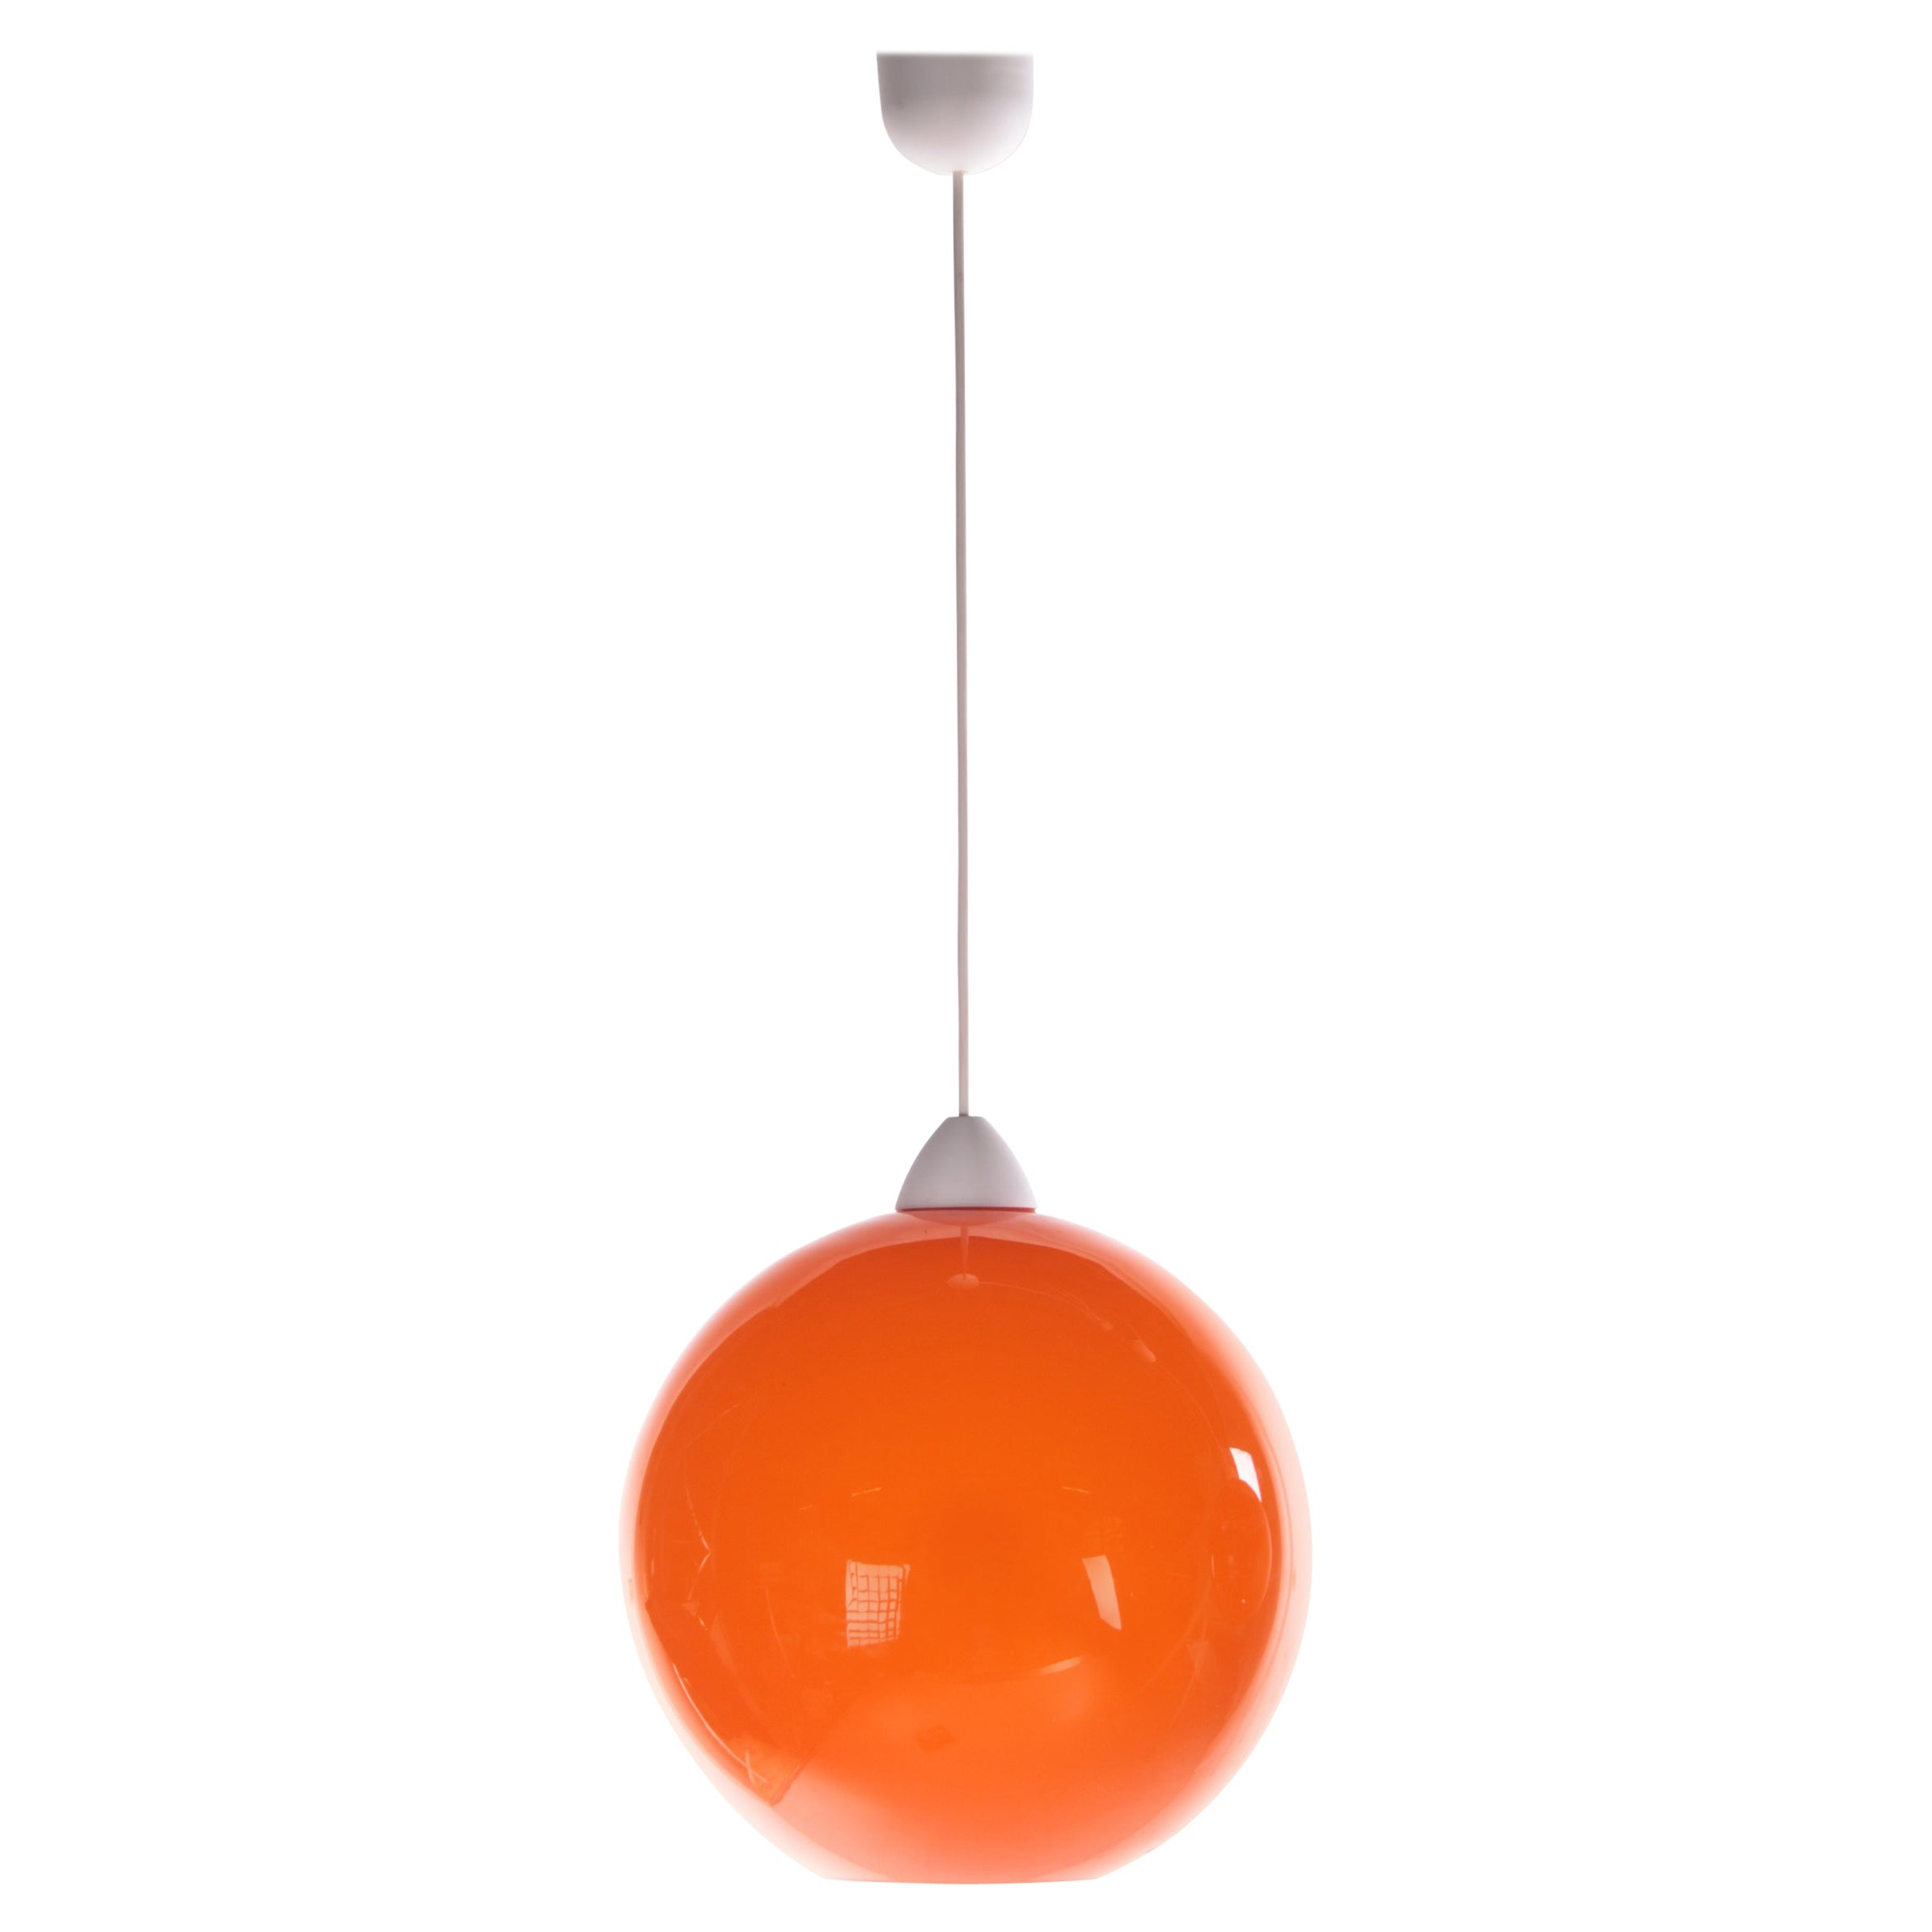 Hanging Lamp Model ui by Vistosi, Design by Alessandro Pianon, 1960s